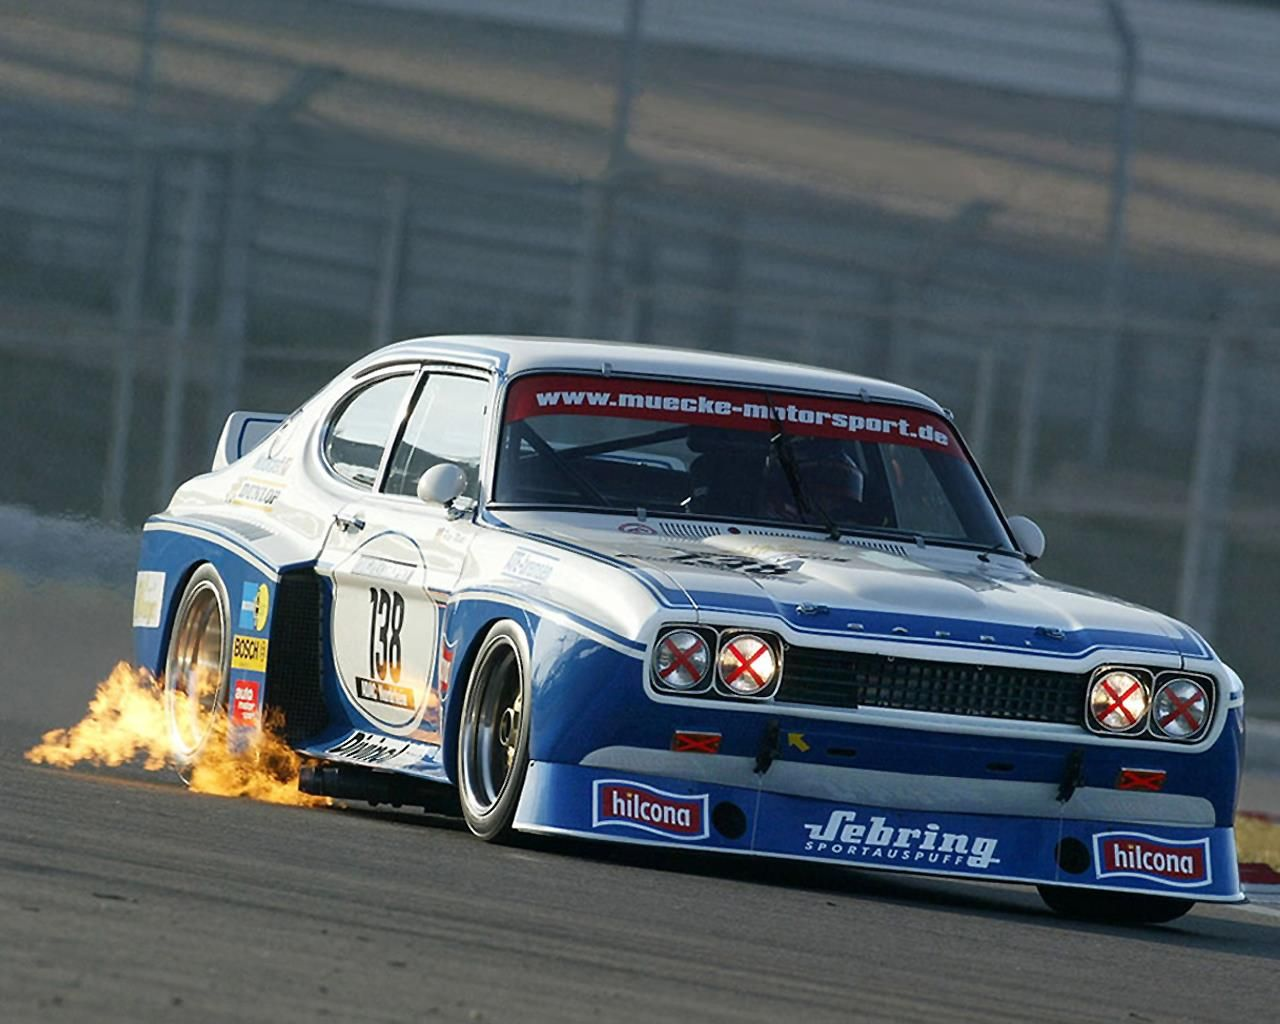 Facebook Ford Capri Ford Motorsport Ford Racing